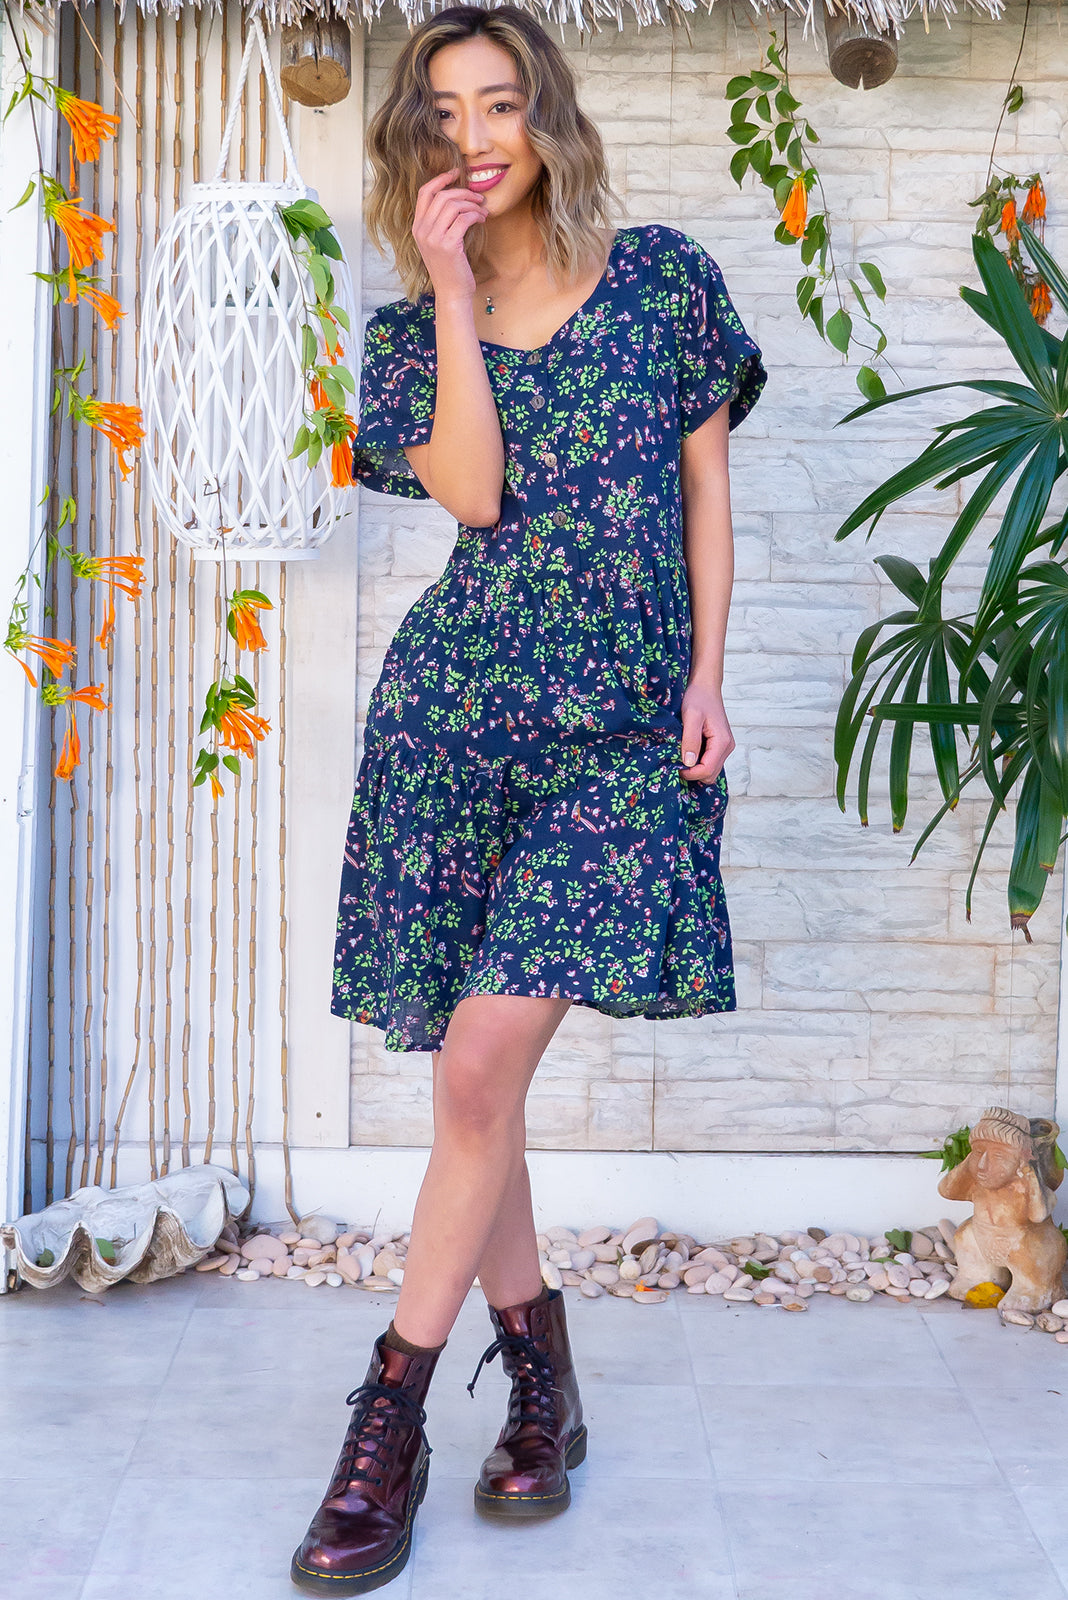 Airlie Navy Iris Mini Dress features functional button down chest to waistline, two-tiered gathered skirt, adjustable button plackets at back to cinch waist and woven 100% cotton in navy base with floral print.